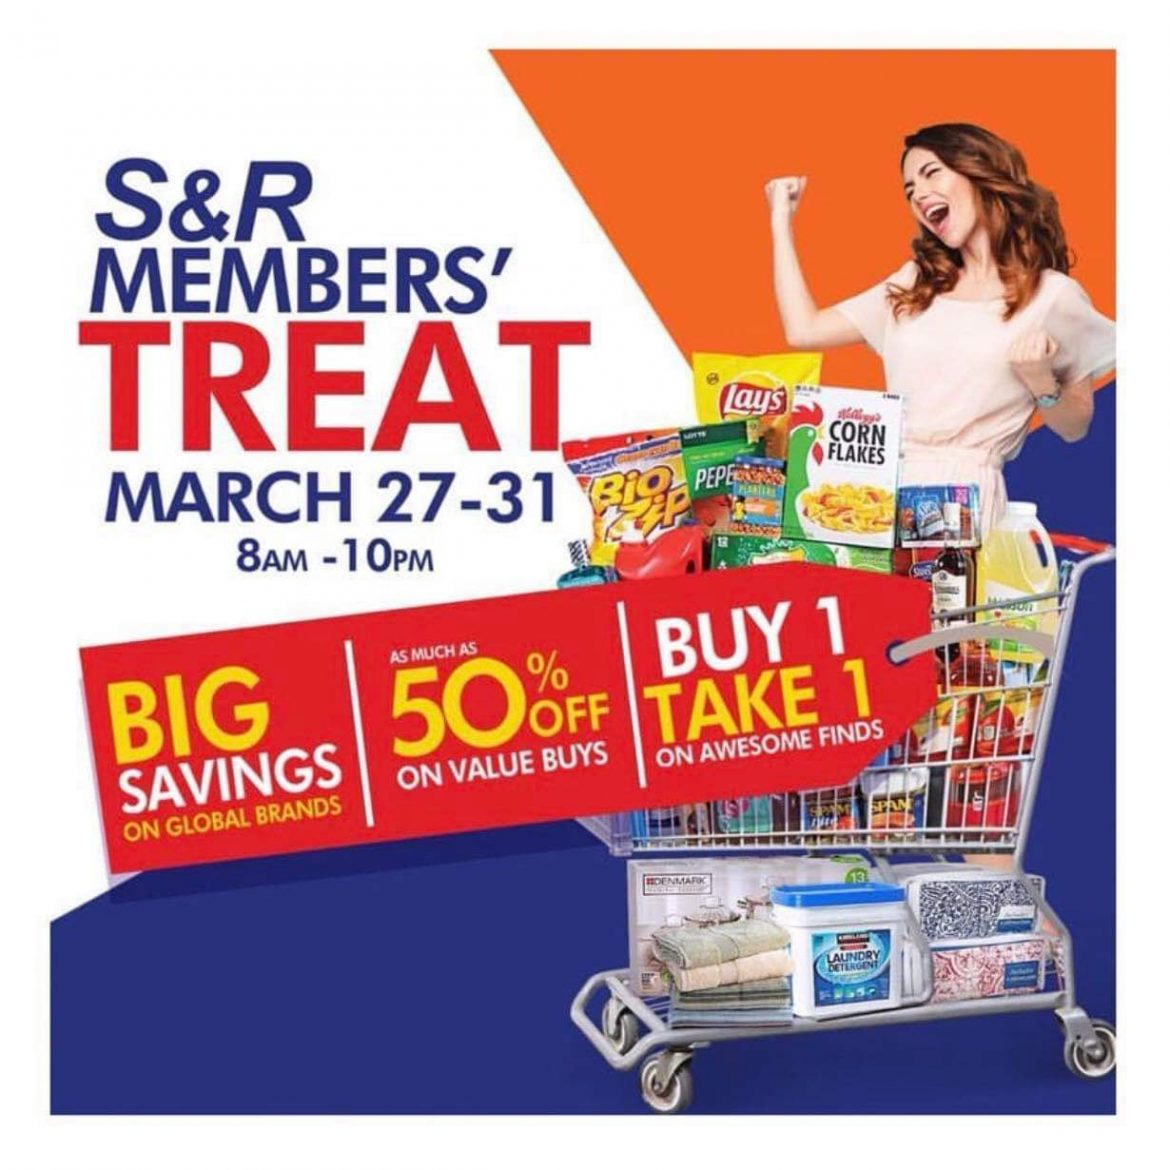 The S&R 5-day Member's Treat